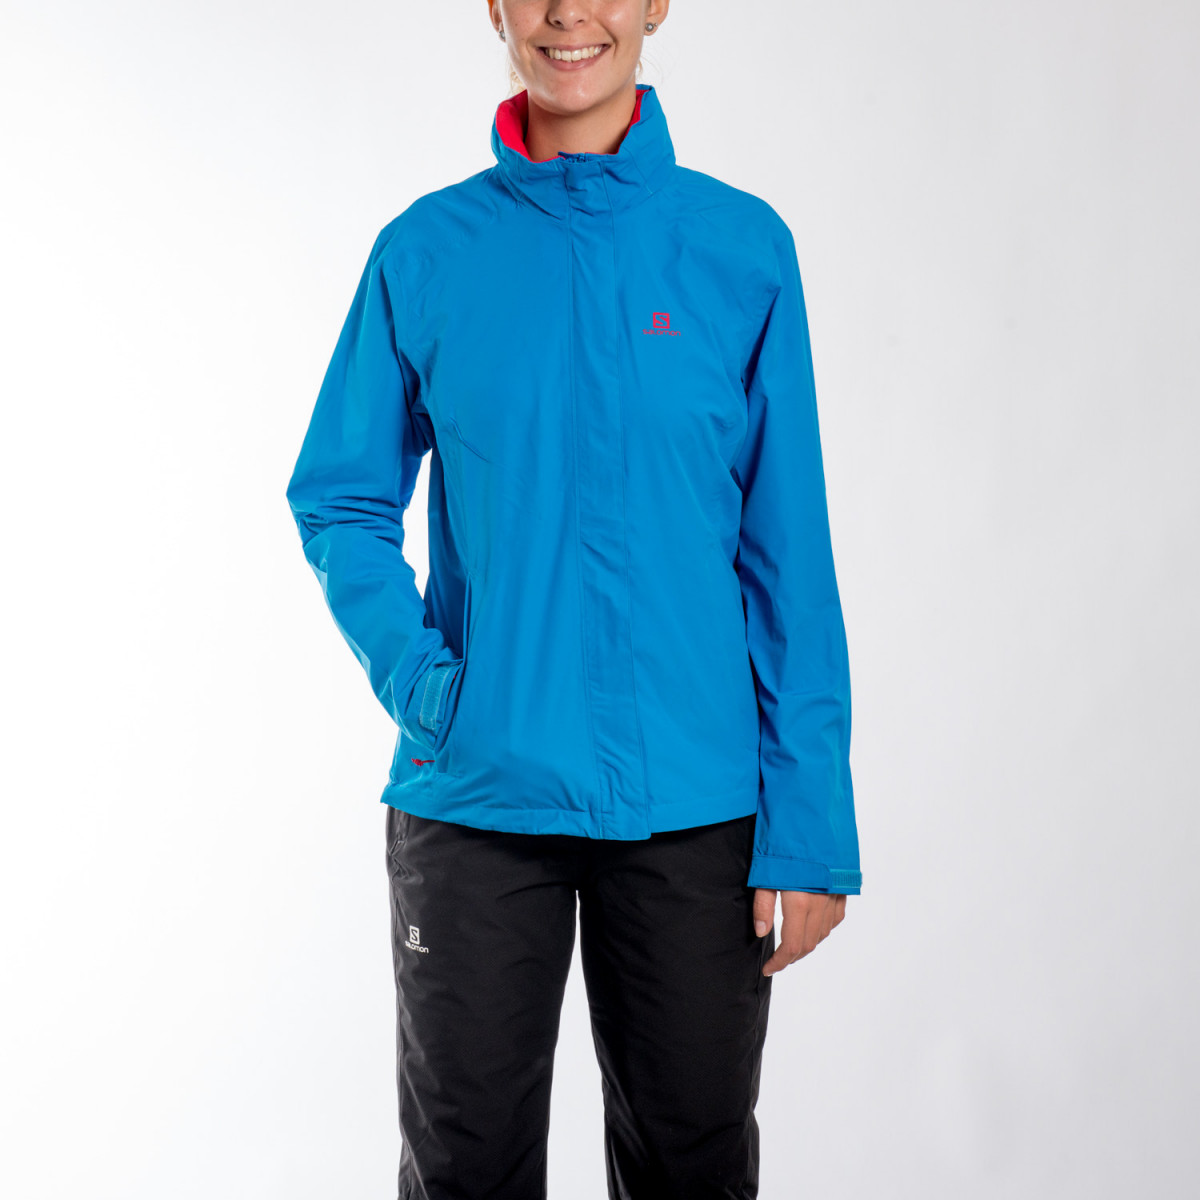 CAMPERA SALOMON ELEMENTAL